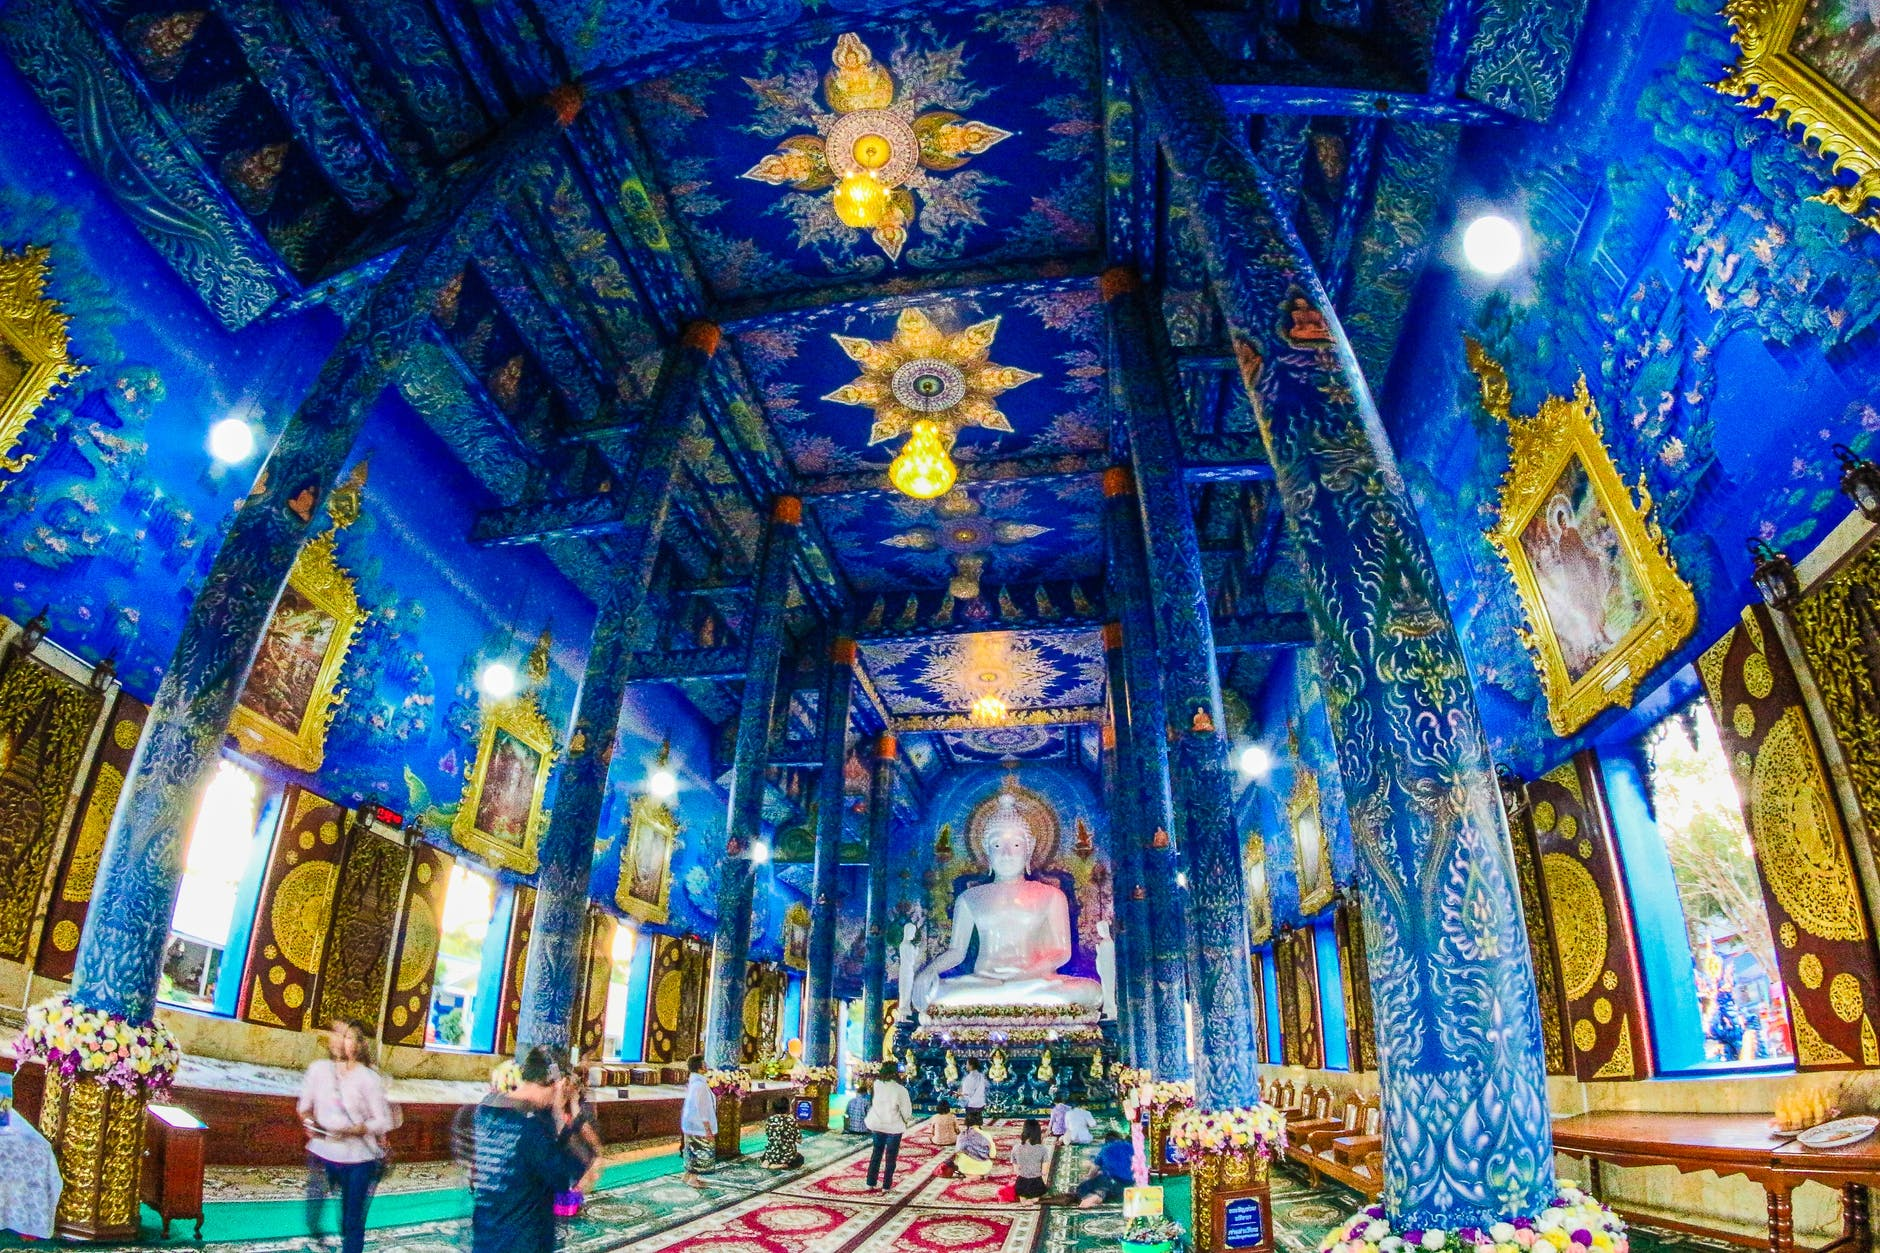 A click inside the Blue Temple